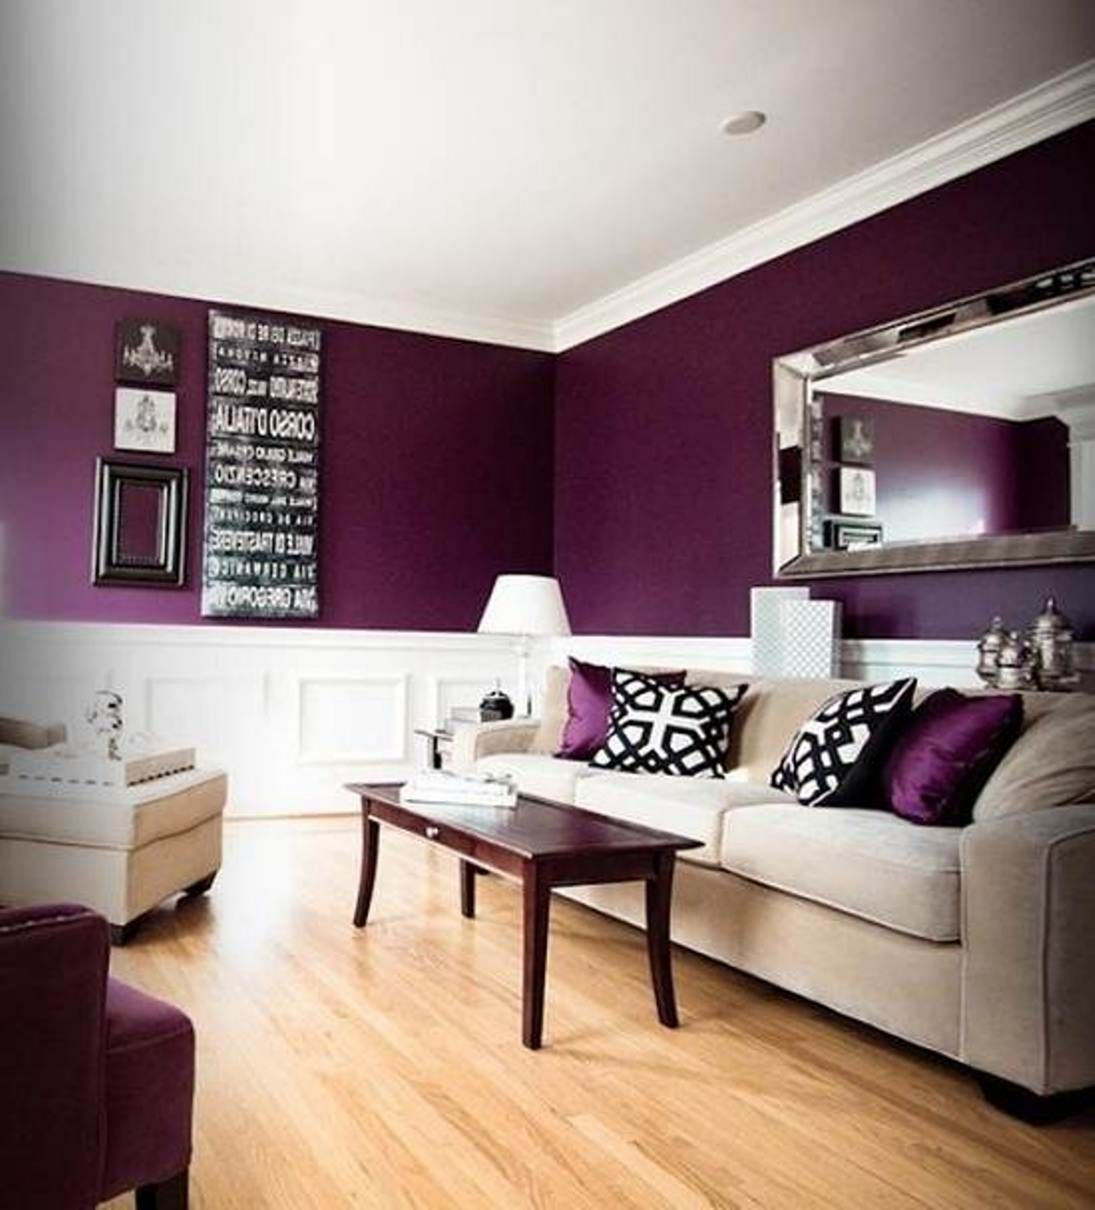 30 cute living room with purple color schemes design ideas on color schemes for living room id=16051